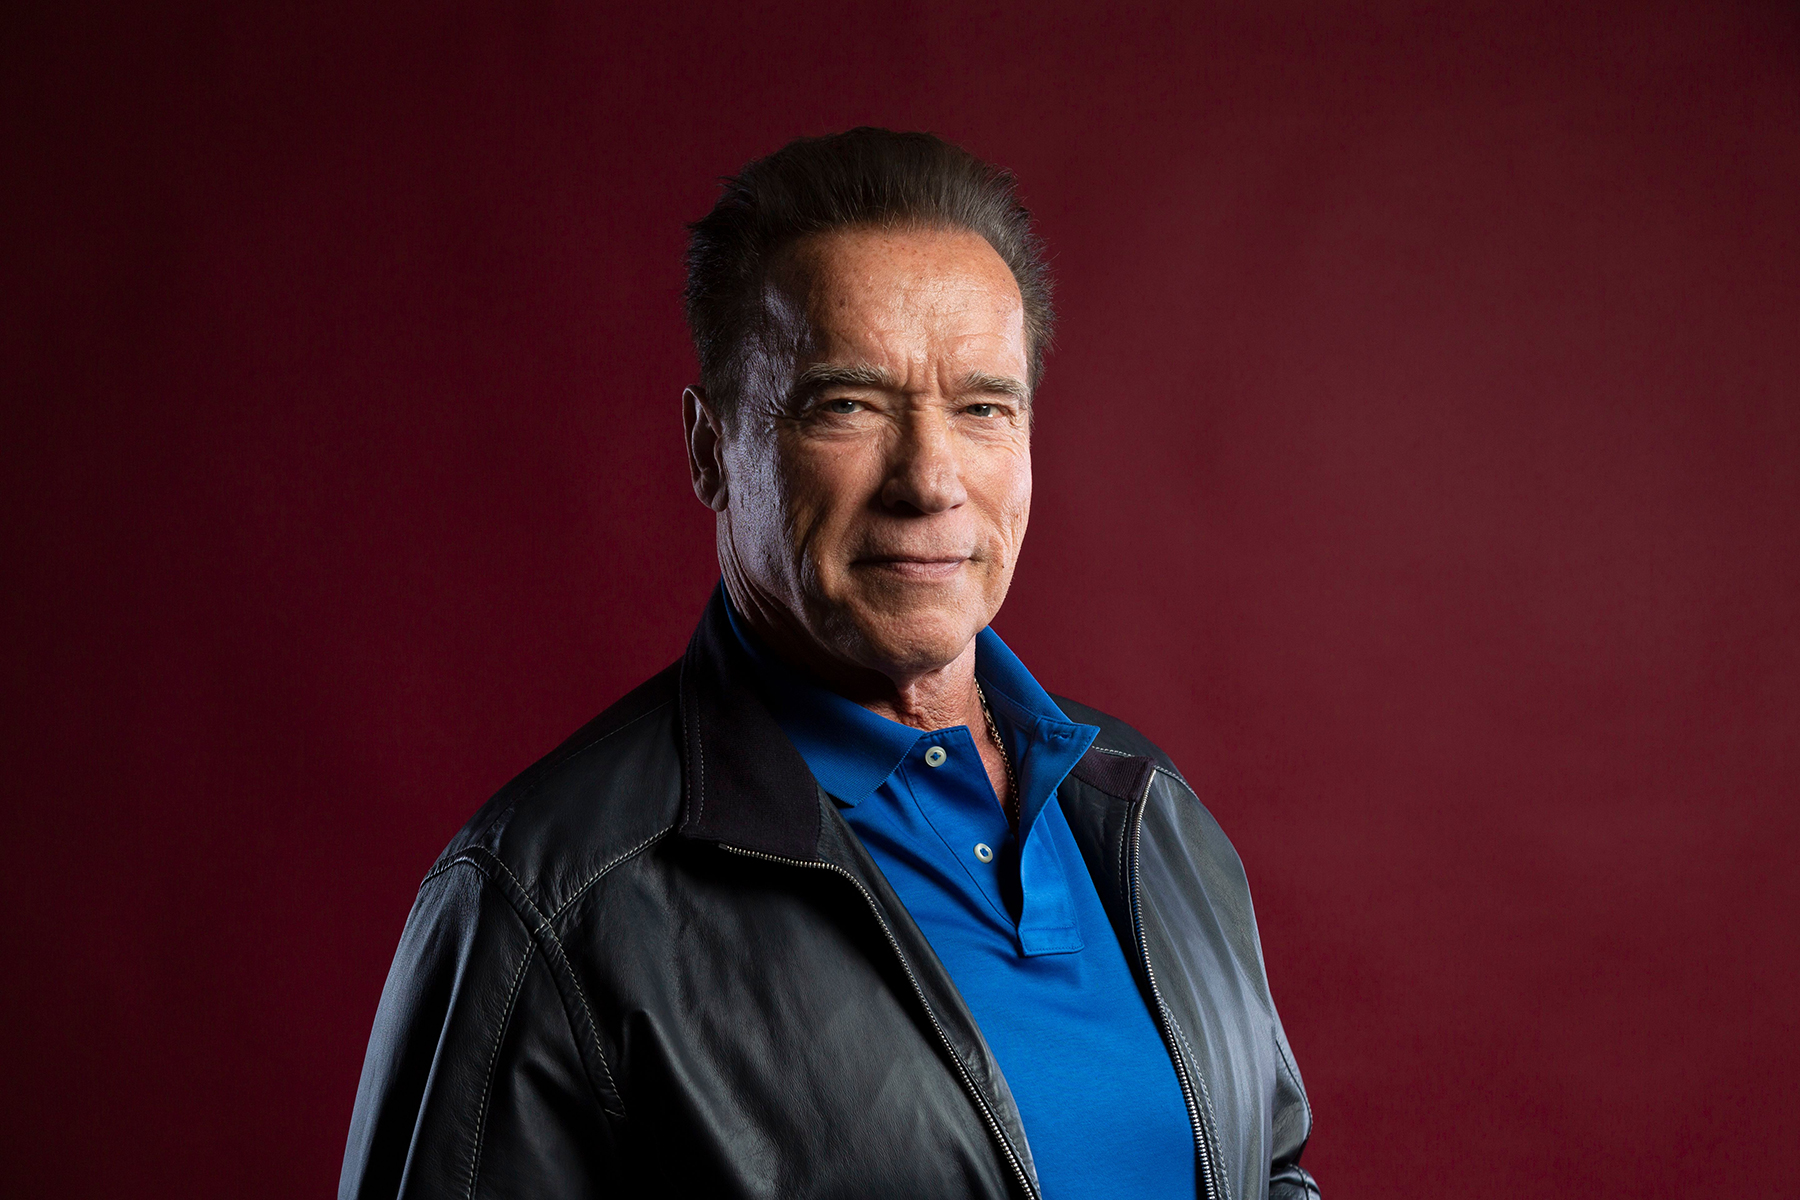 Arnold Schwarzenegger Donates $1 Million to COVID-19 Medical Supply Relief